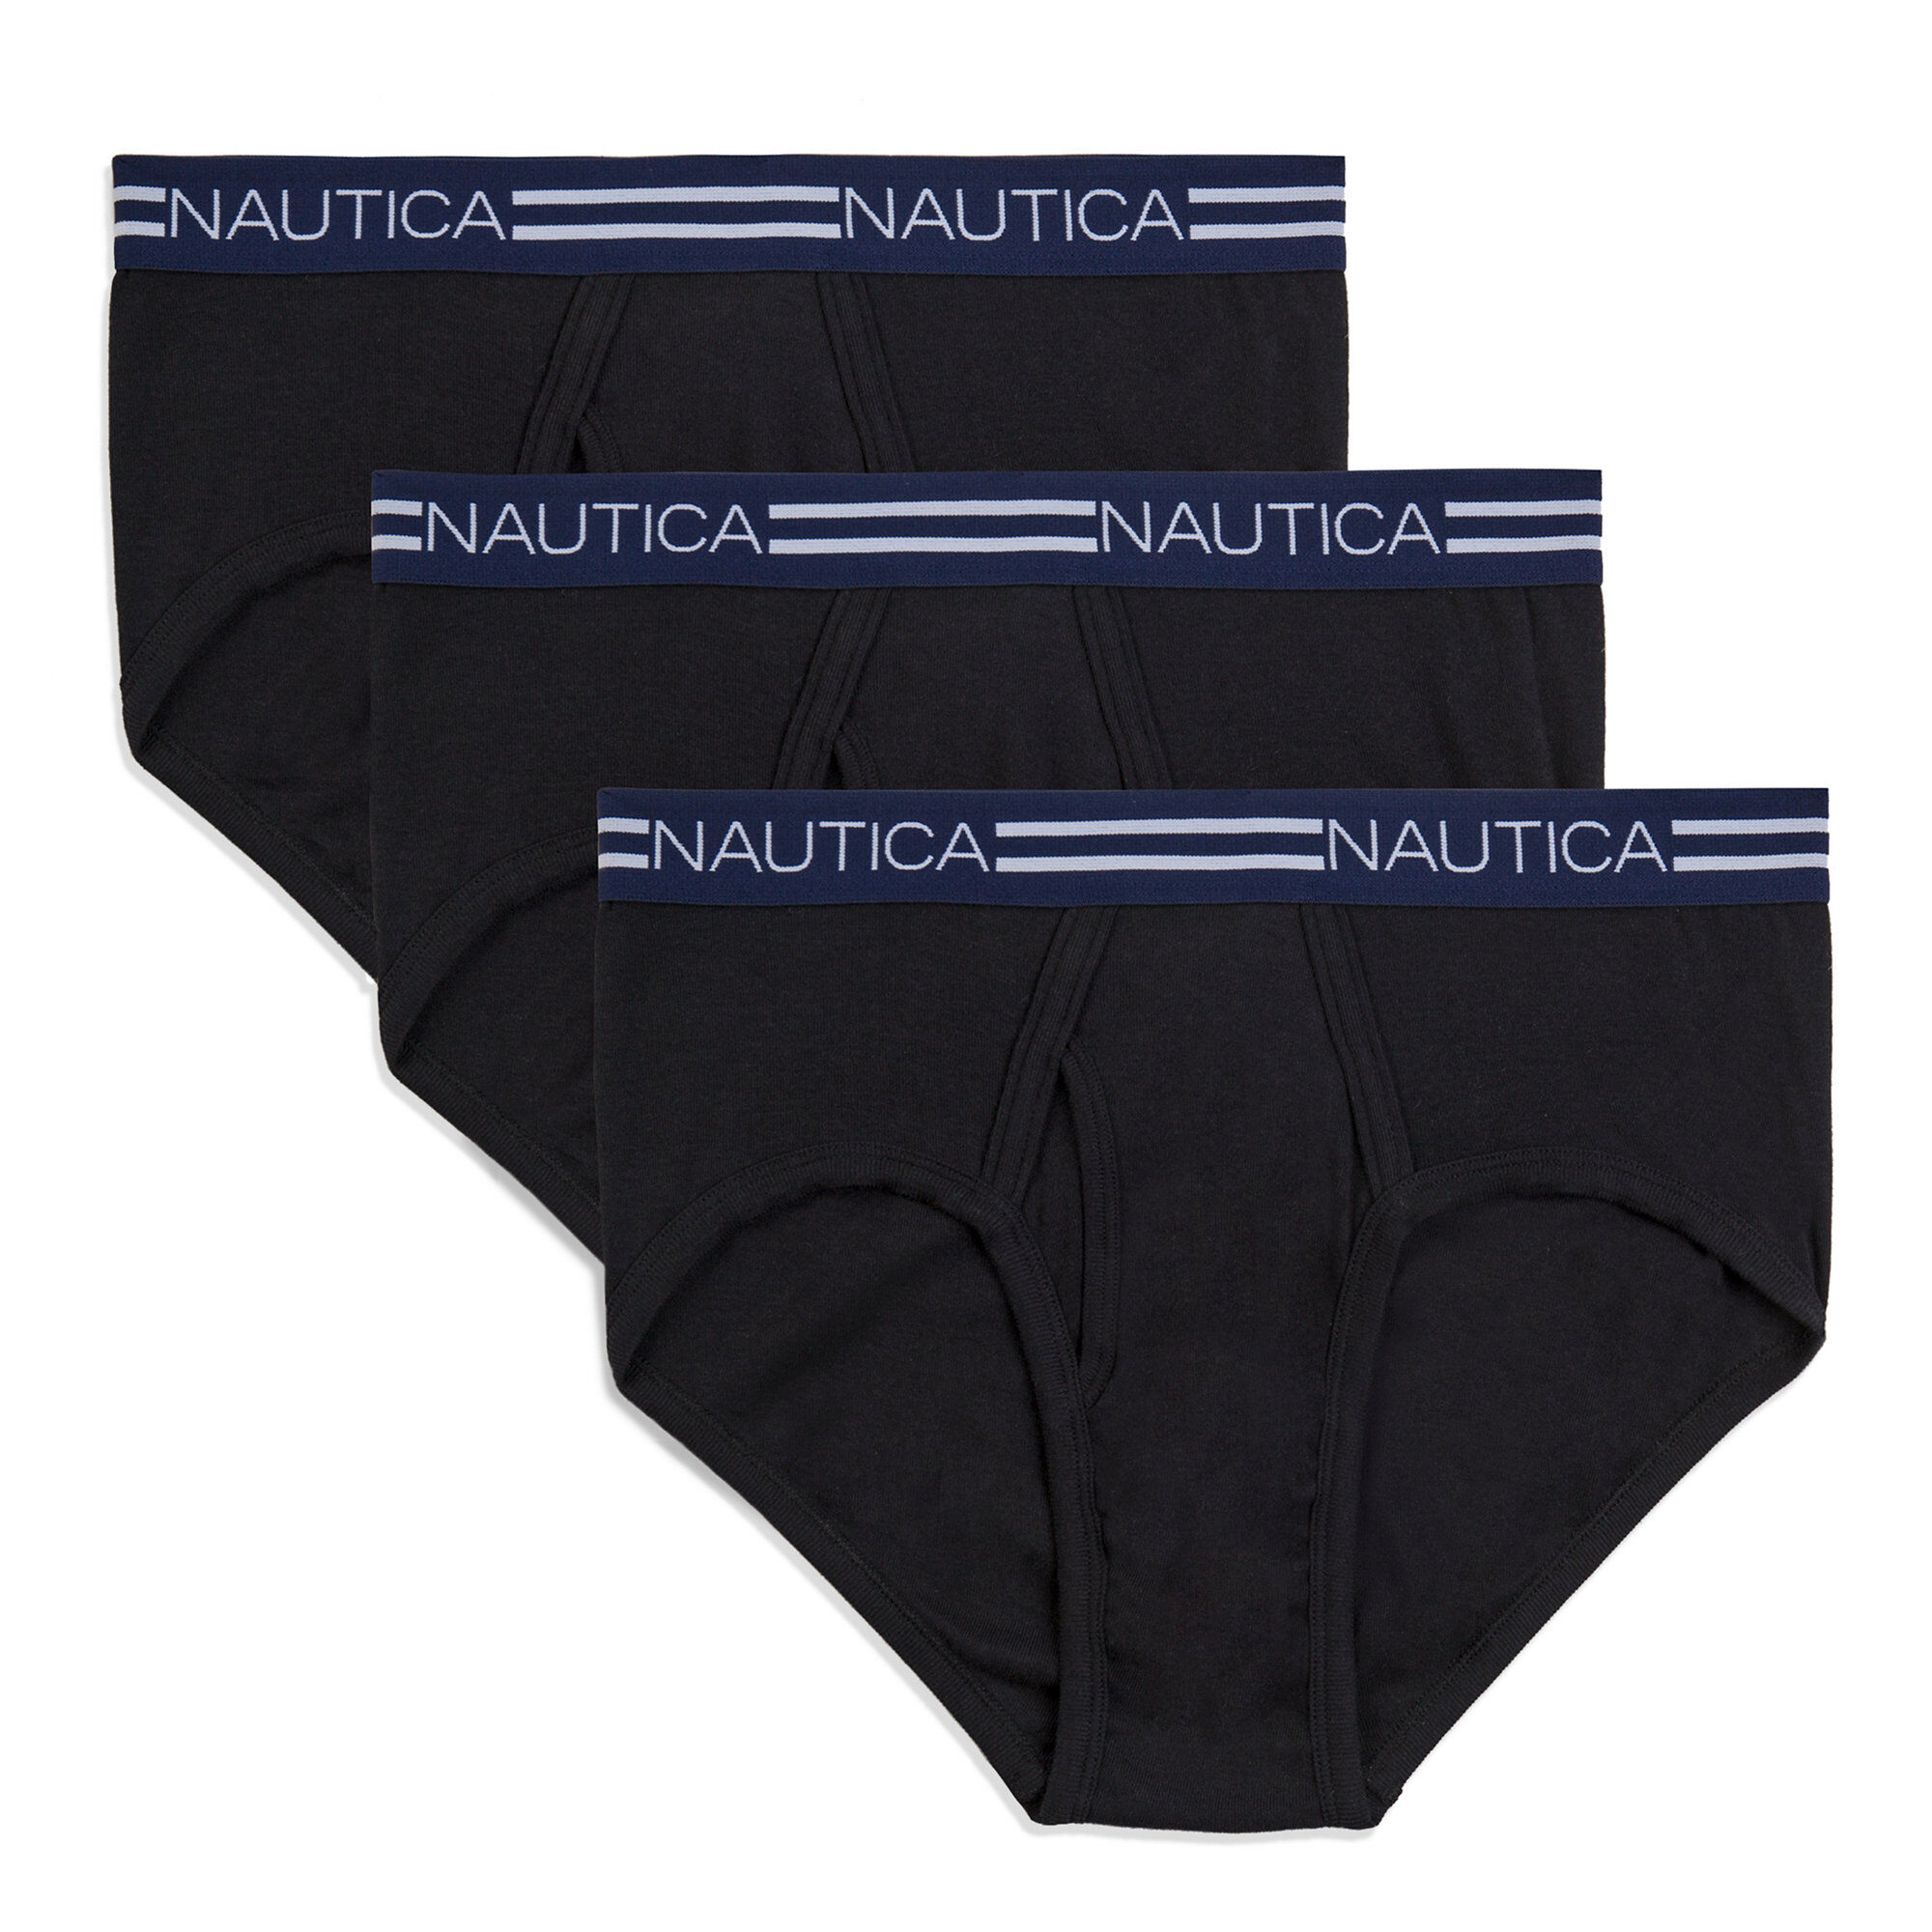 Nautica Mens Classic Briefs, 3-Pack